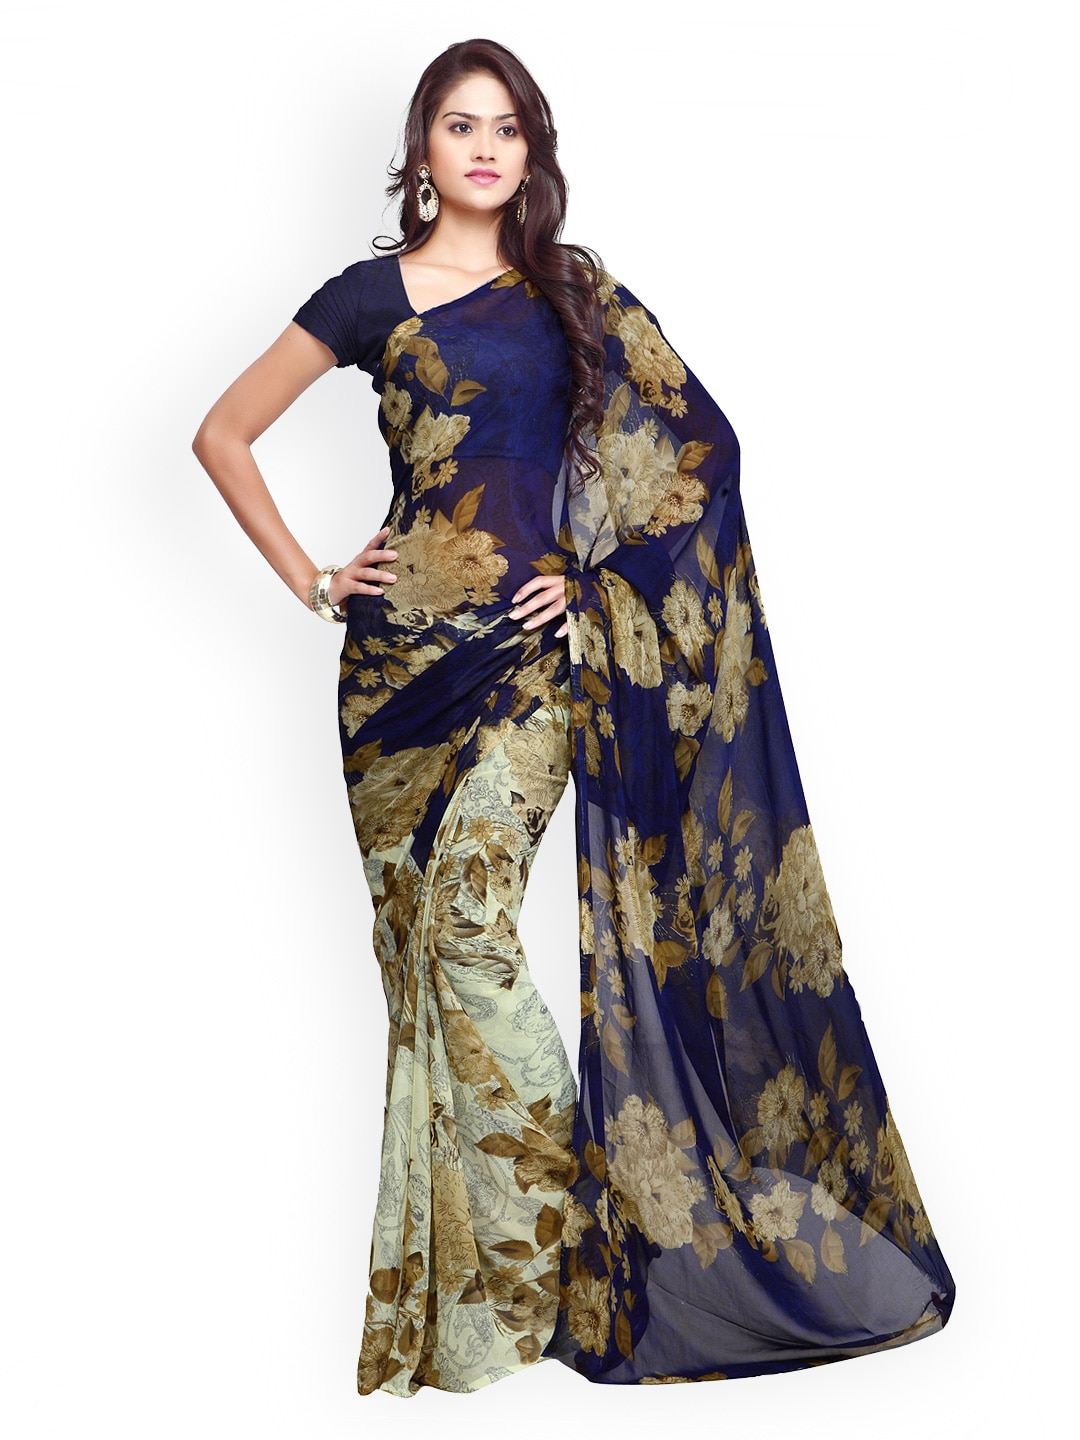 8c5b2bb88 Navy Blue Sarees - Buy Navy Blue Sarees Online - Myntra